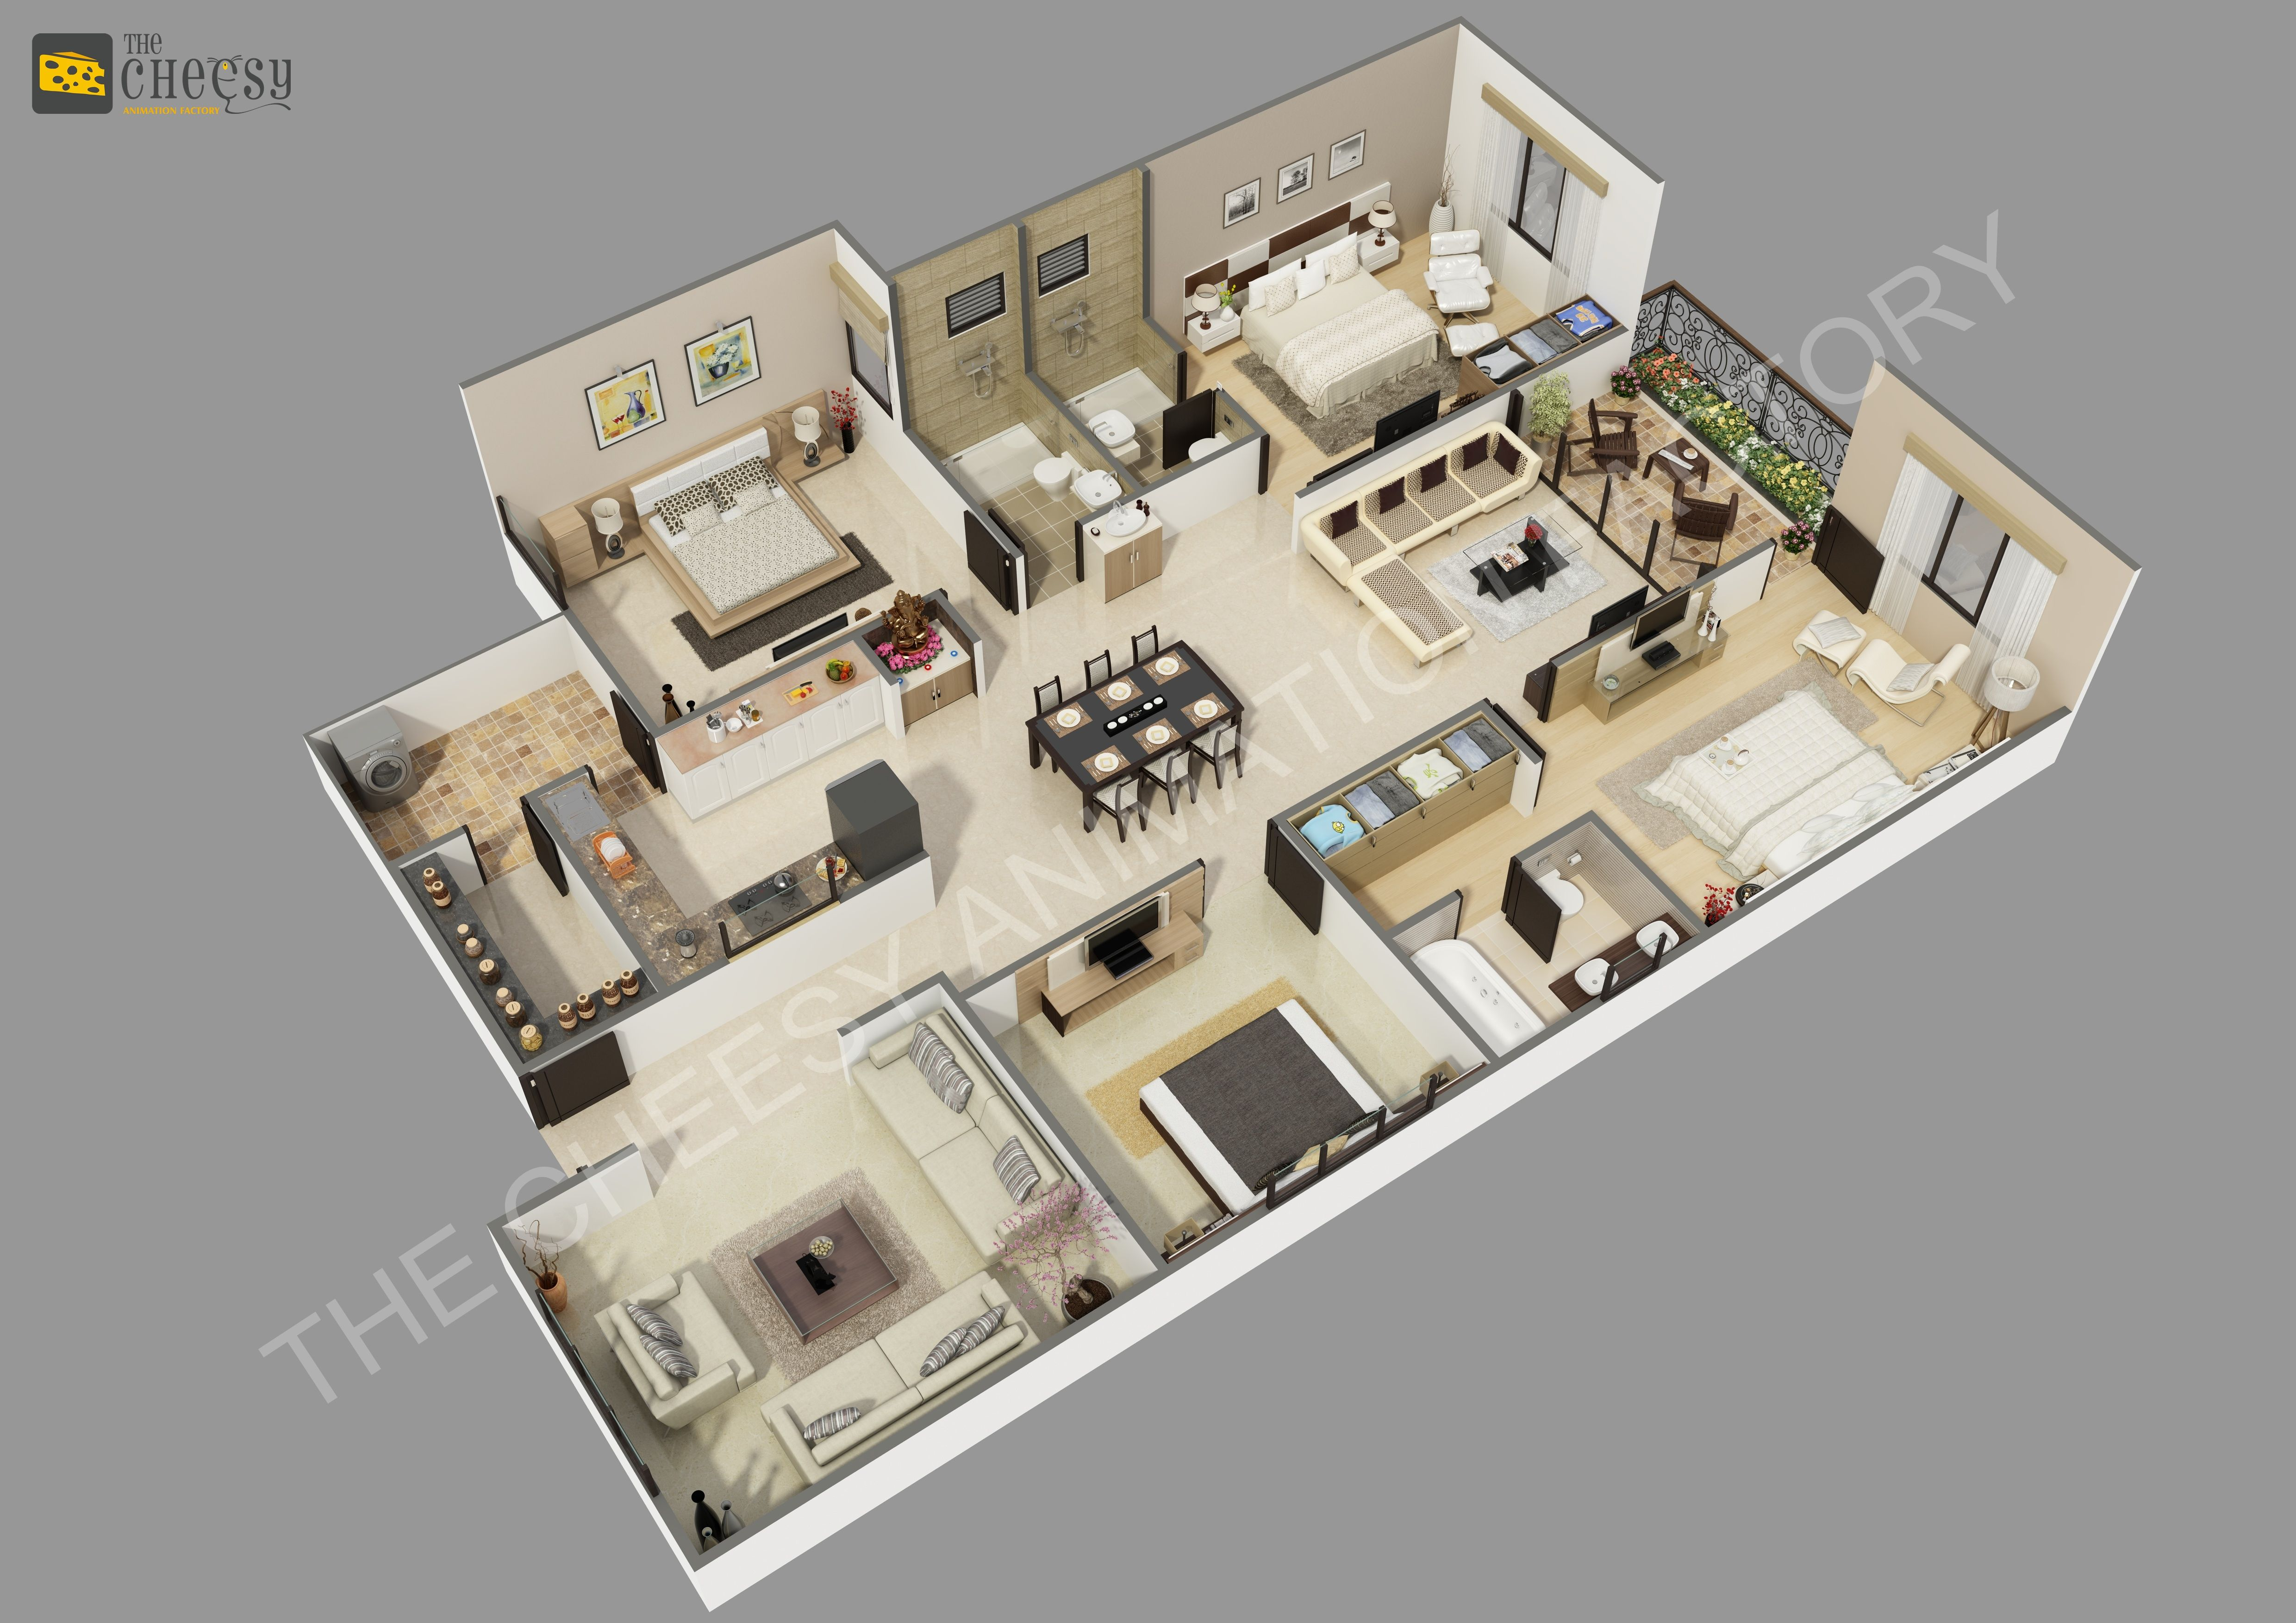 The Cheesy Animation Studio 2d And 3d Floor Plan Rendering